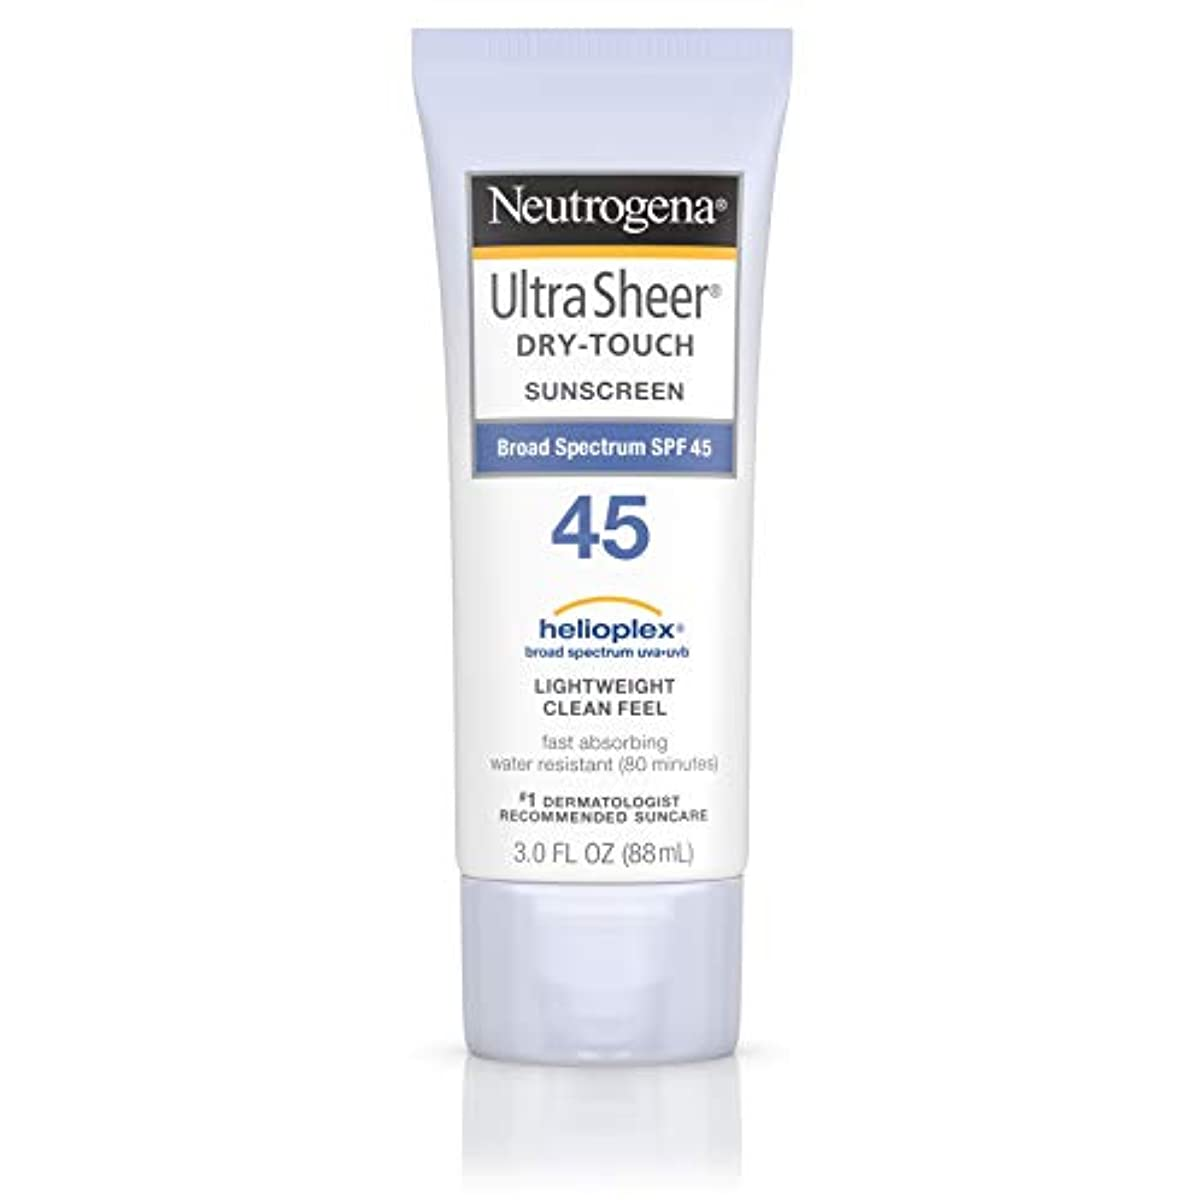 ロゴ不倫コック海外直送品 Neutrogena Neutrogena Ultra Sheer Dry-Touch Sunblock Spf 45【並行輸入品】